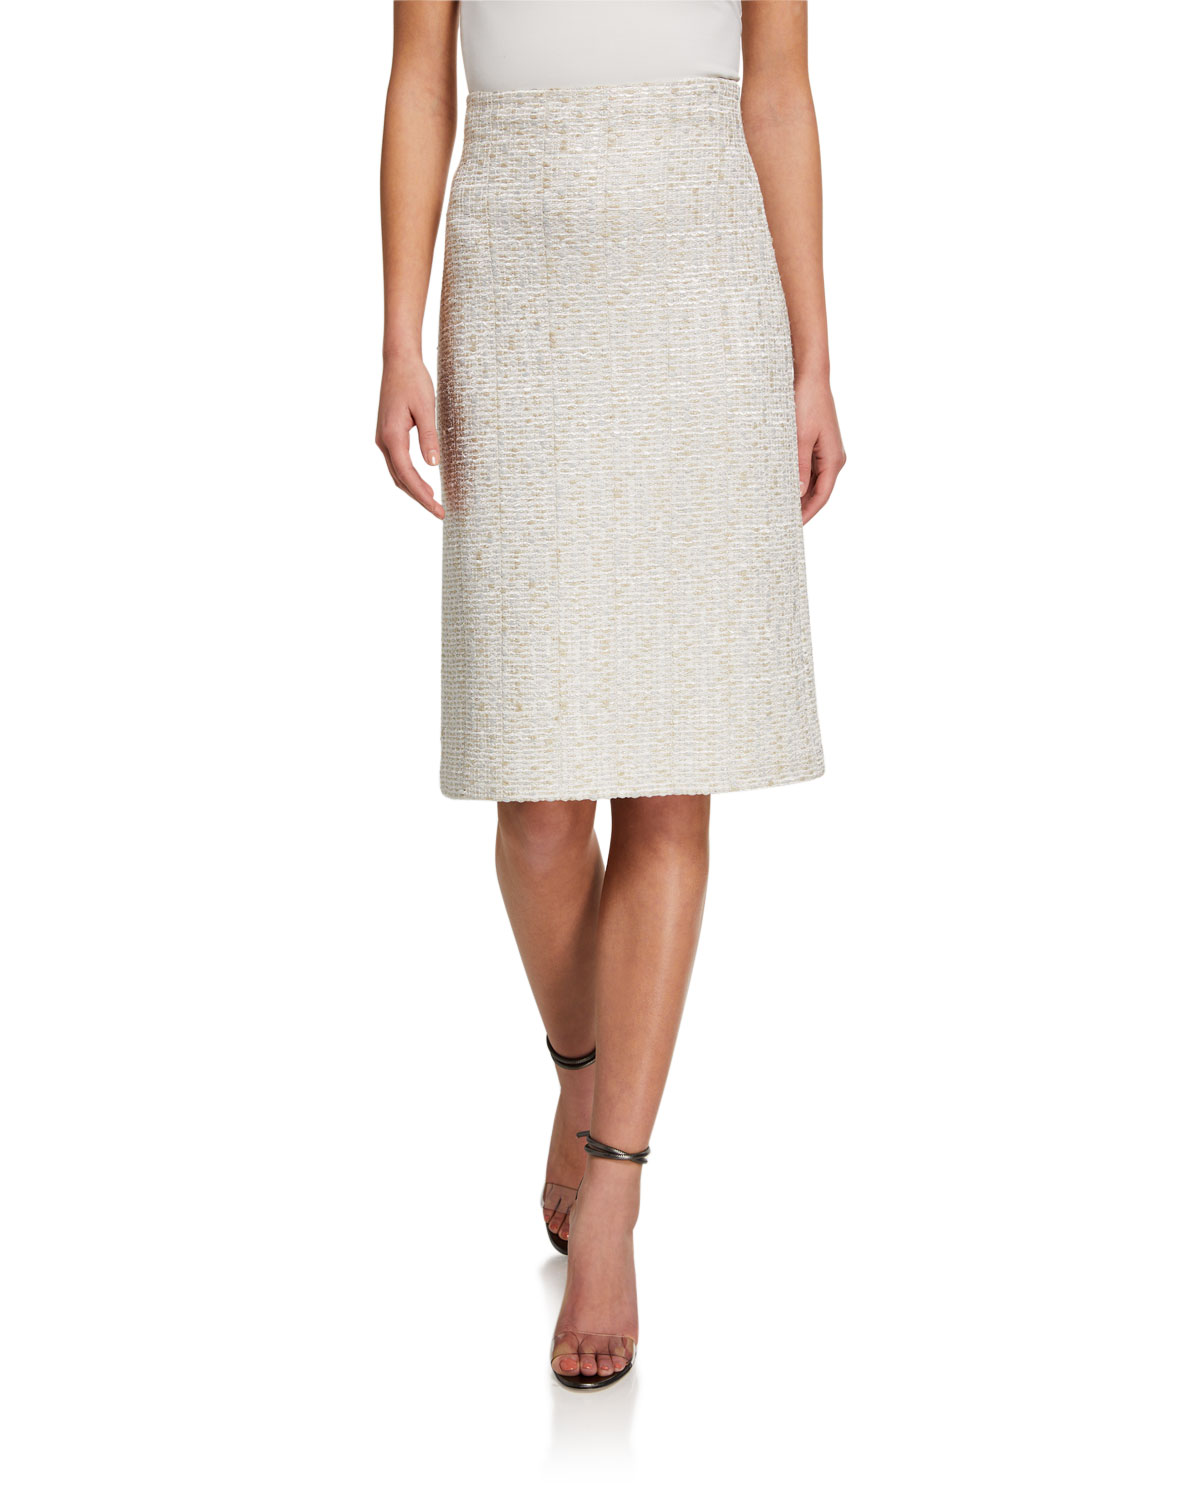 St. John Collection Structured Caged Inlay Knit High-Waist A-Line Skirt